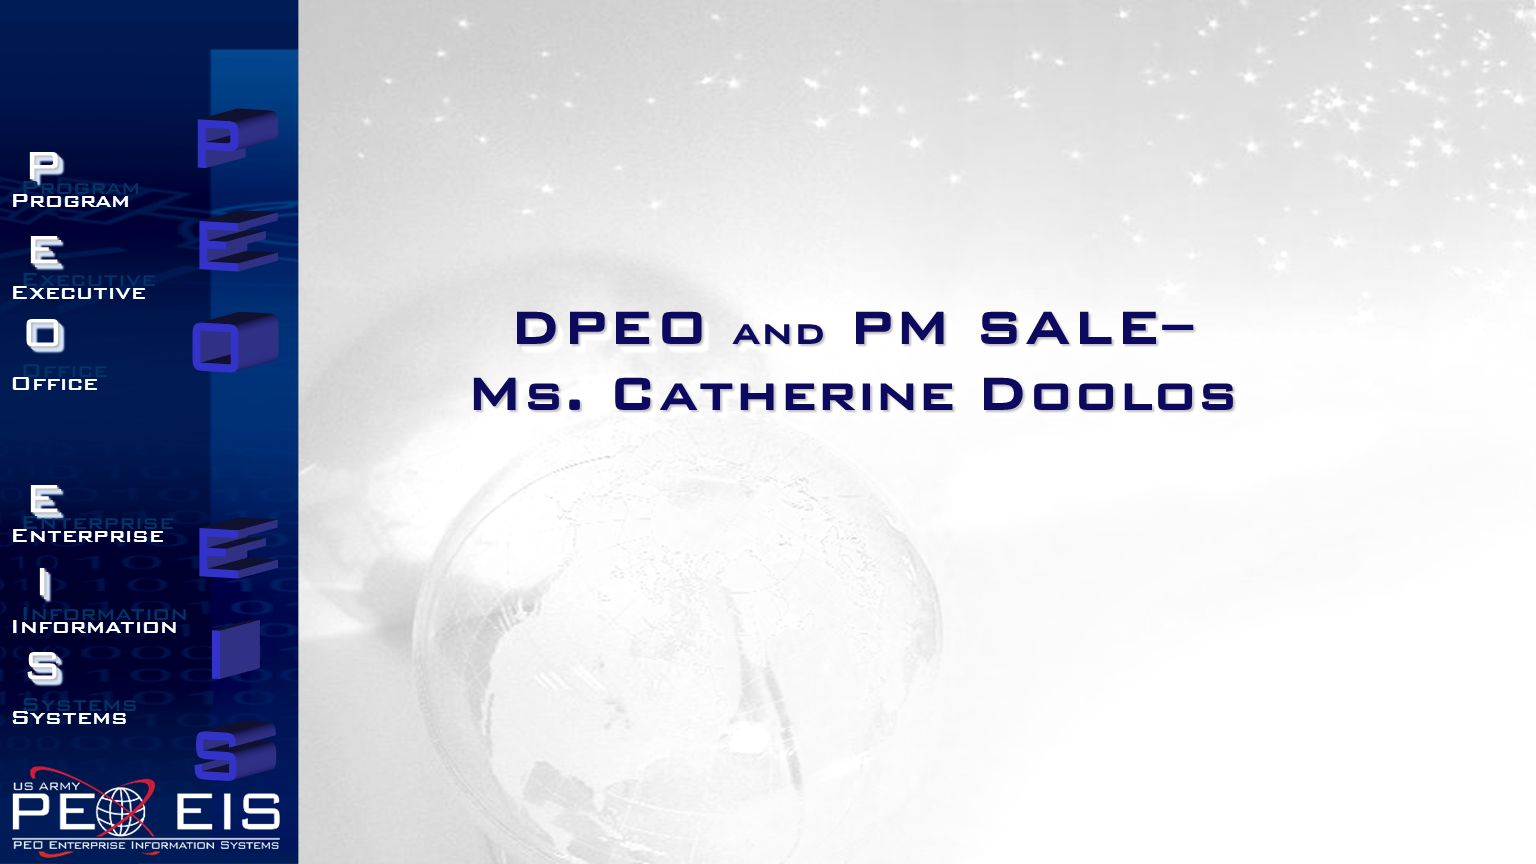 DPEO and PM SALE– Ms. Catherine Doolos